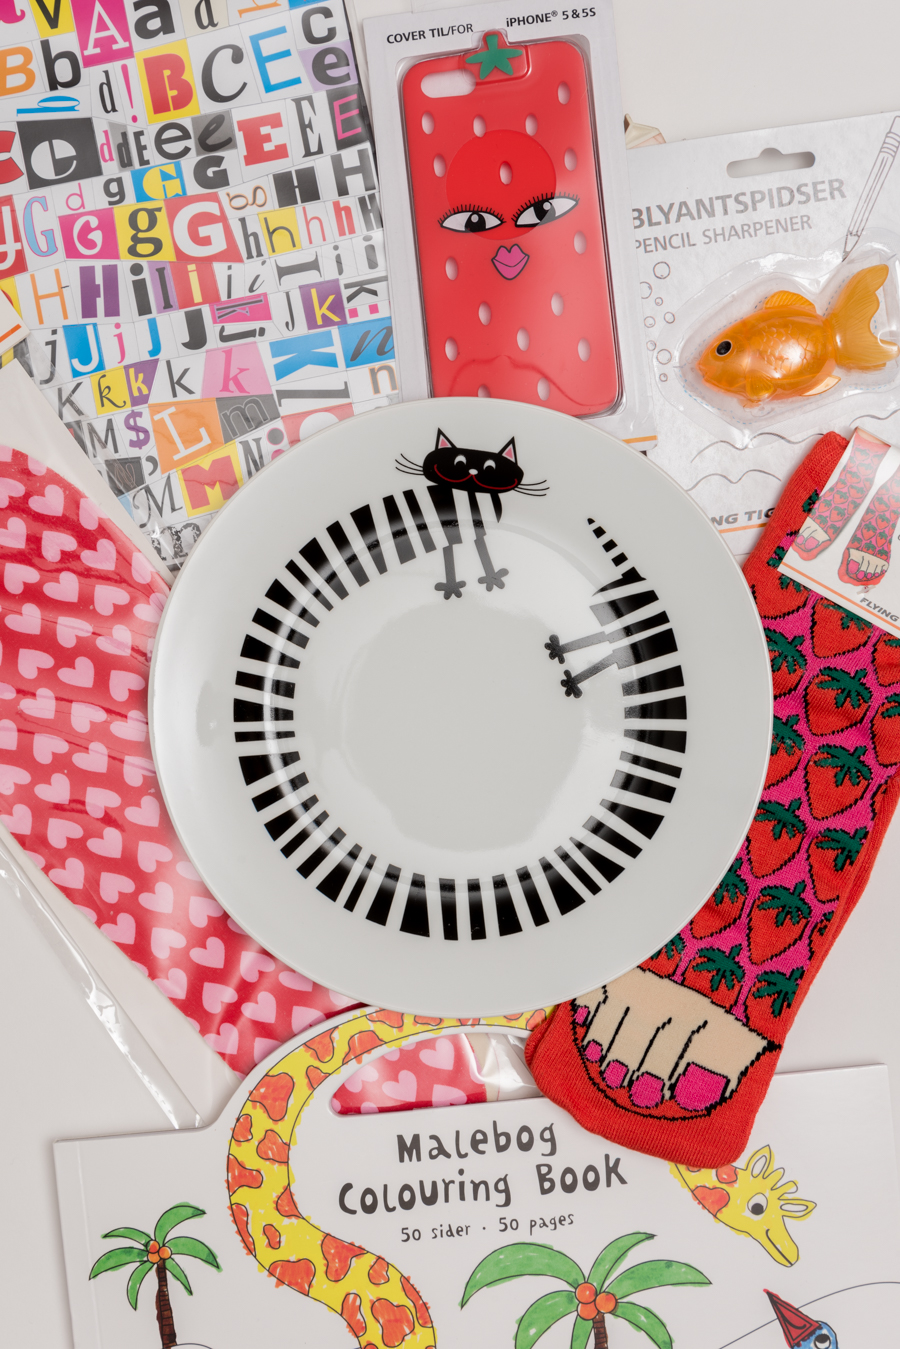 ROCK MAMA NYC LIFESTYLE BLOG -  FLYING TIGER - FUN STORE TO SHOP